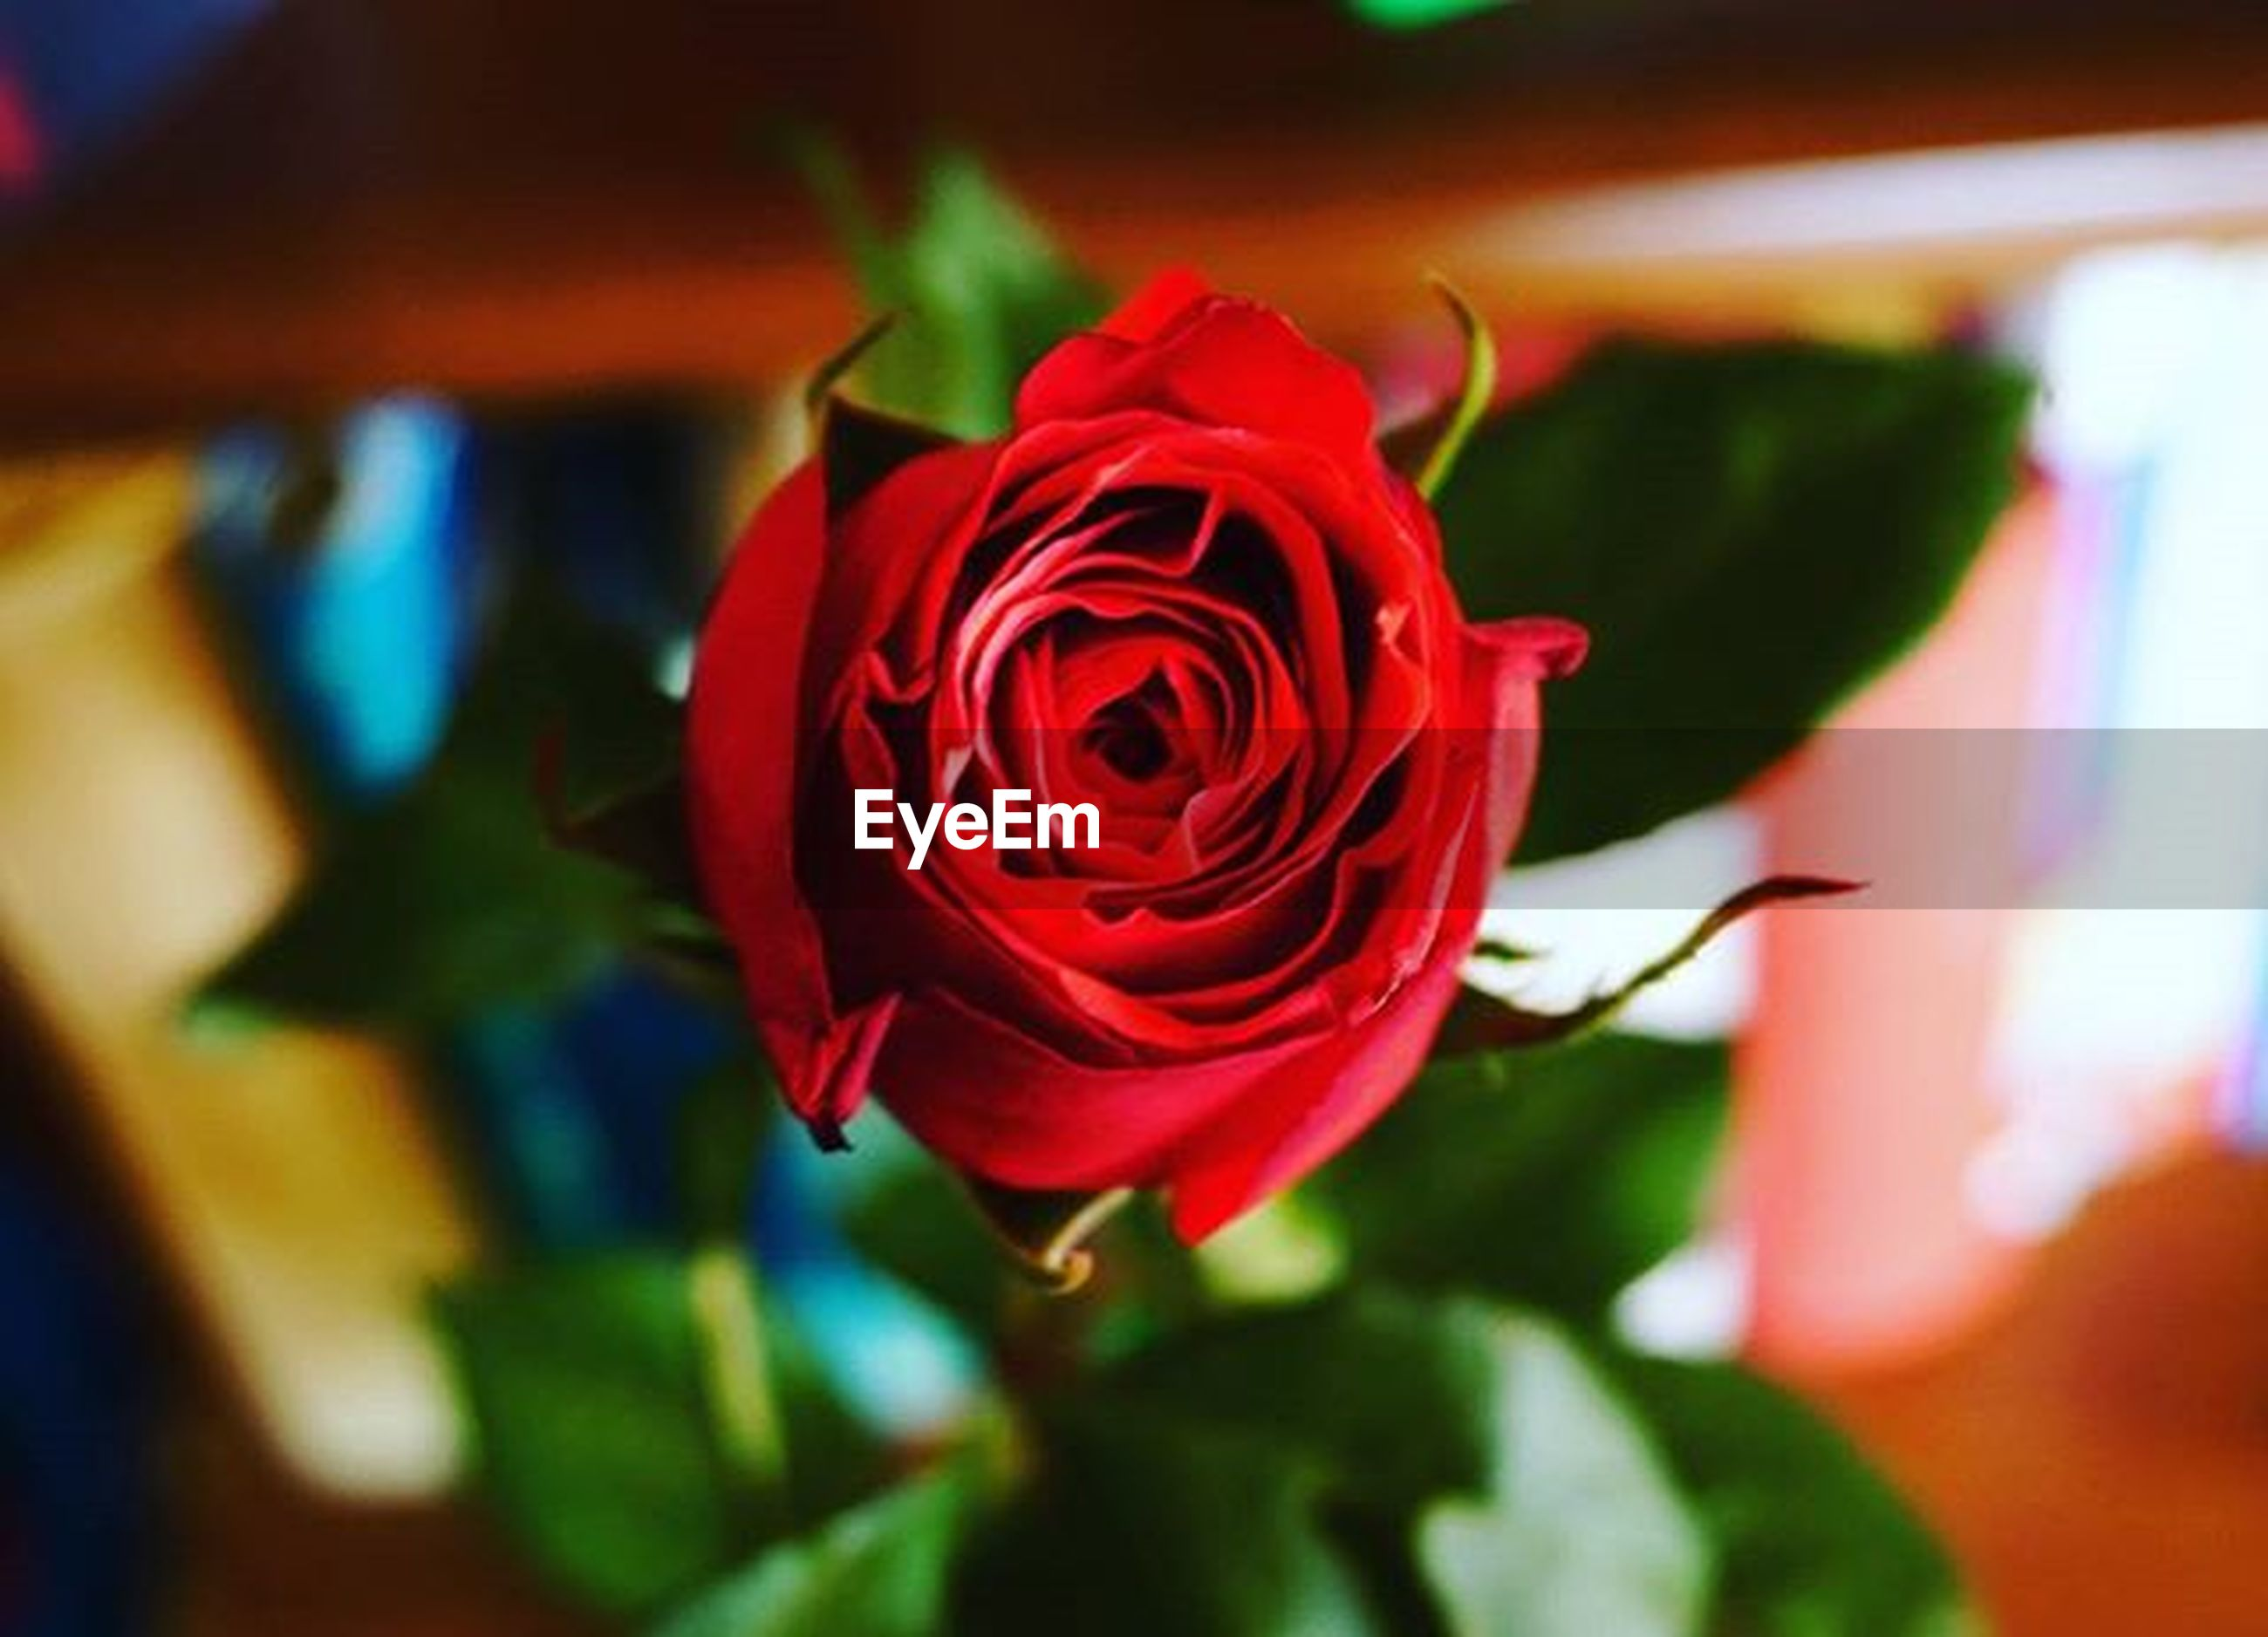 flower, rose - flower, close-up, red, no people, petal, focus on foreground, fragility, nature, flower head, outdoors, beauty in nature, freshness, day